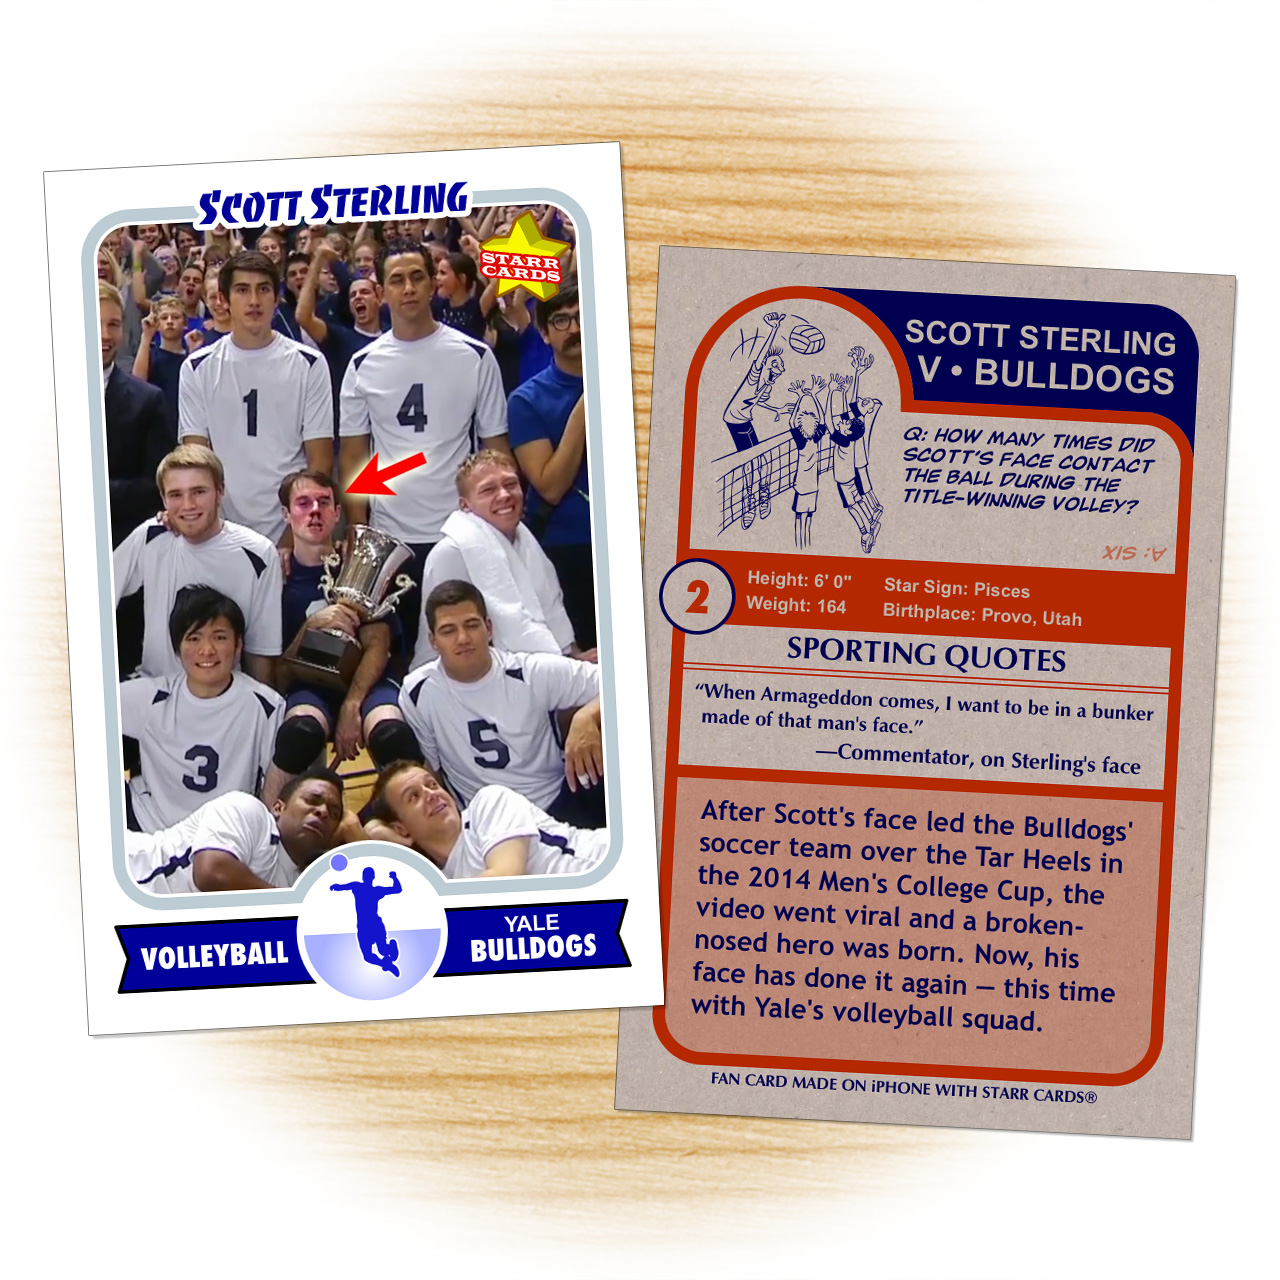 Fan card of Scott Sterling for Yale Bulldogs' volleyball team